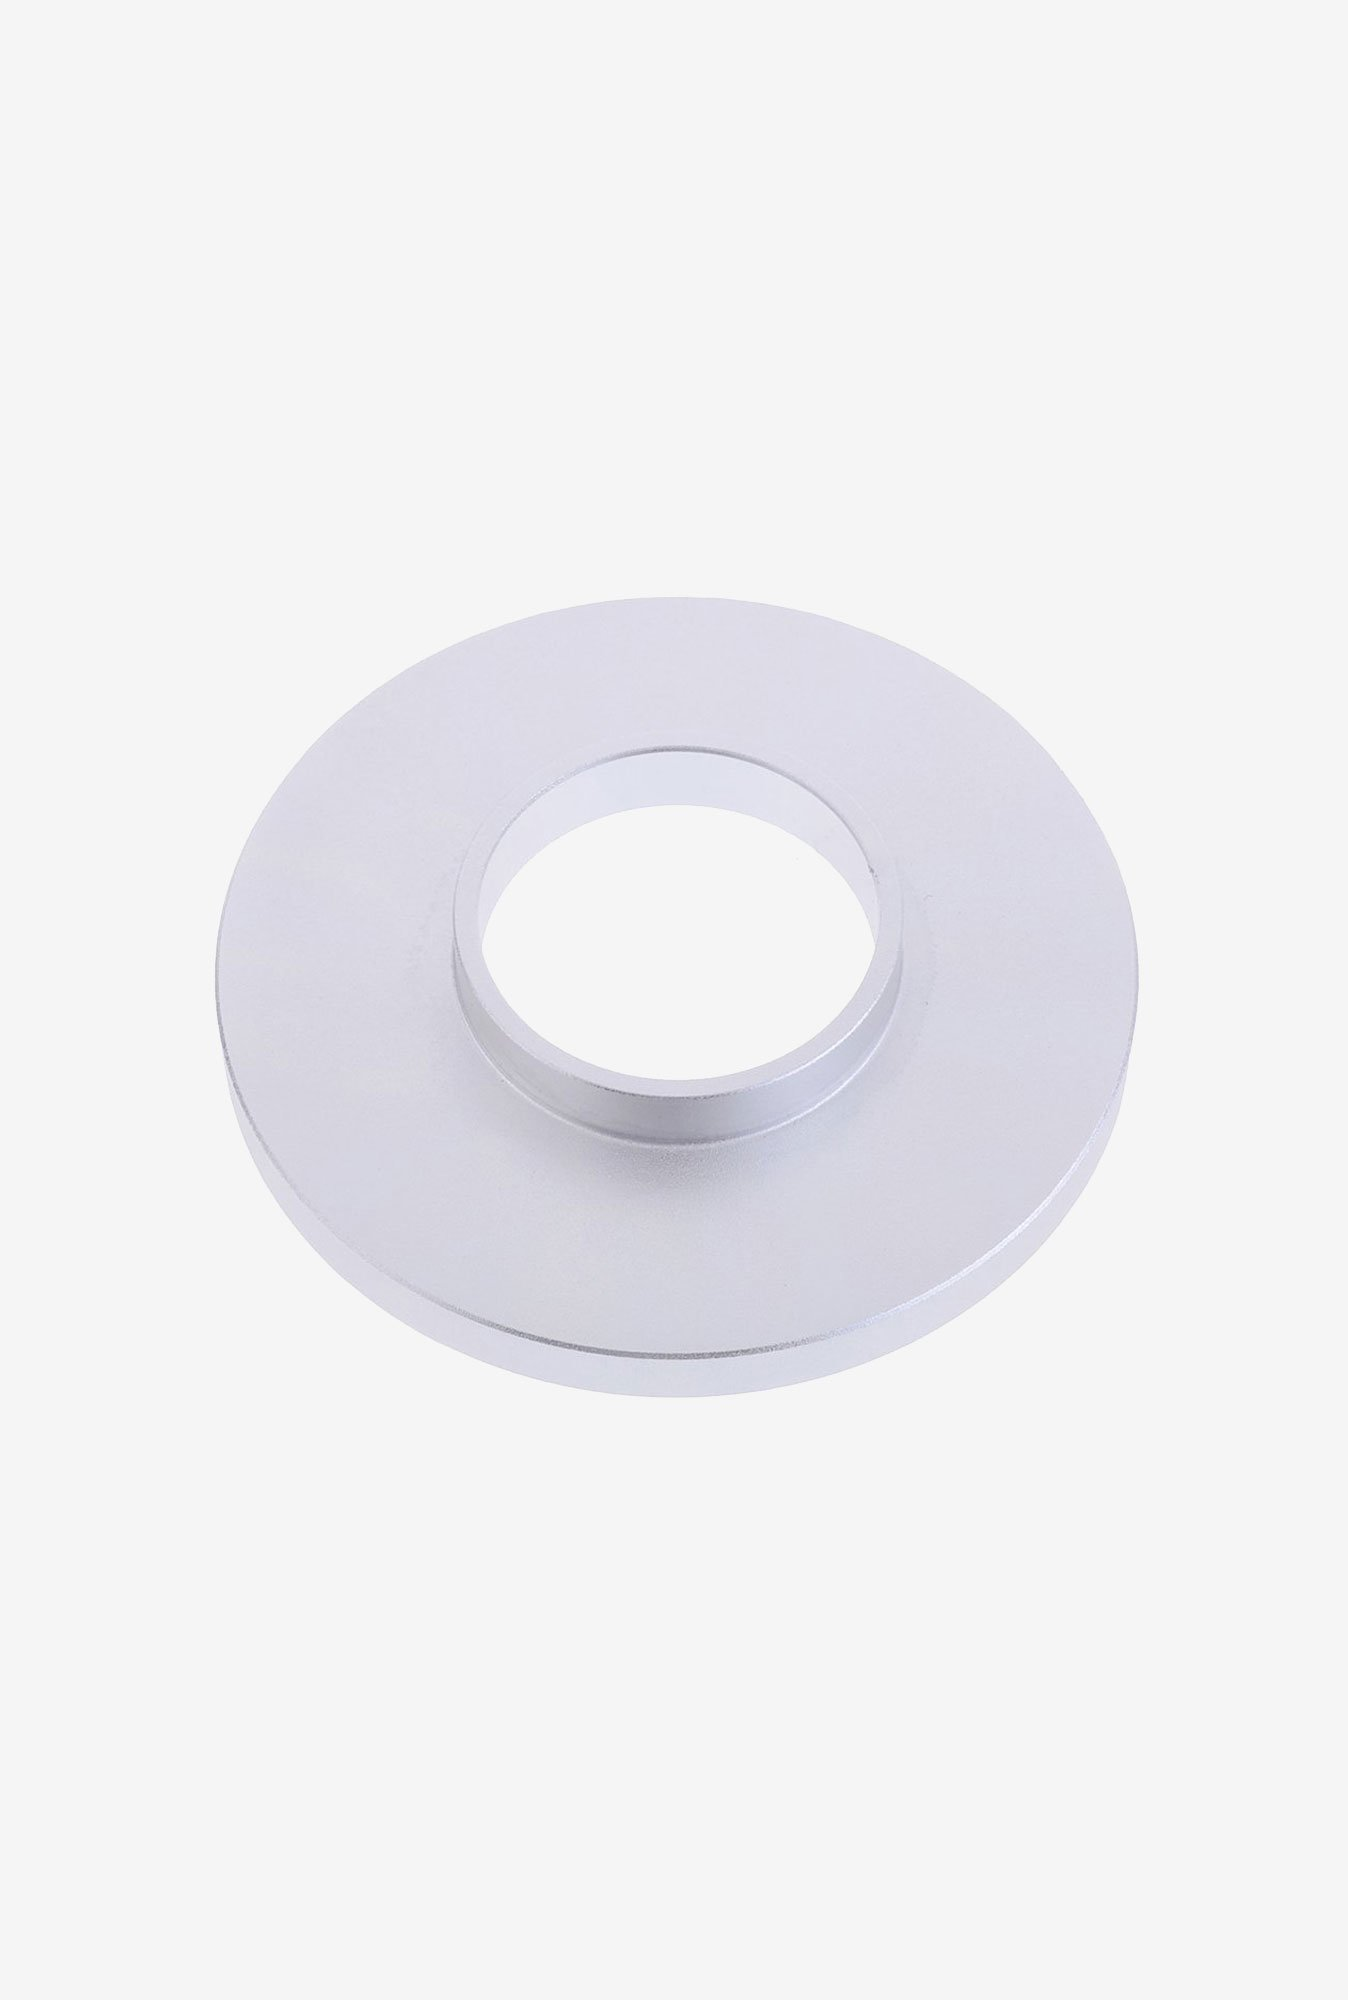 Neewer 52Mm UV Lens Filter Adapter Ring For Gopro (Silver)